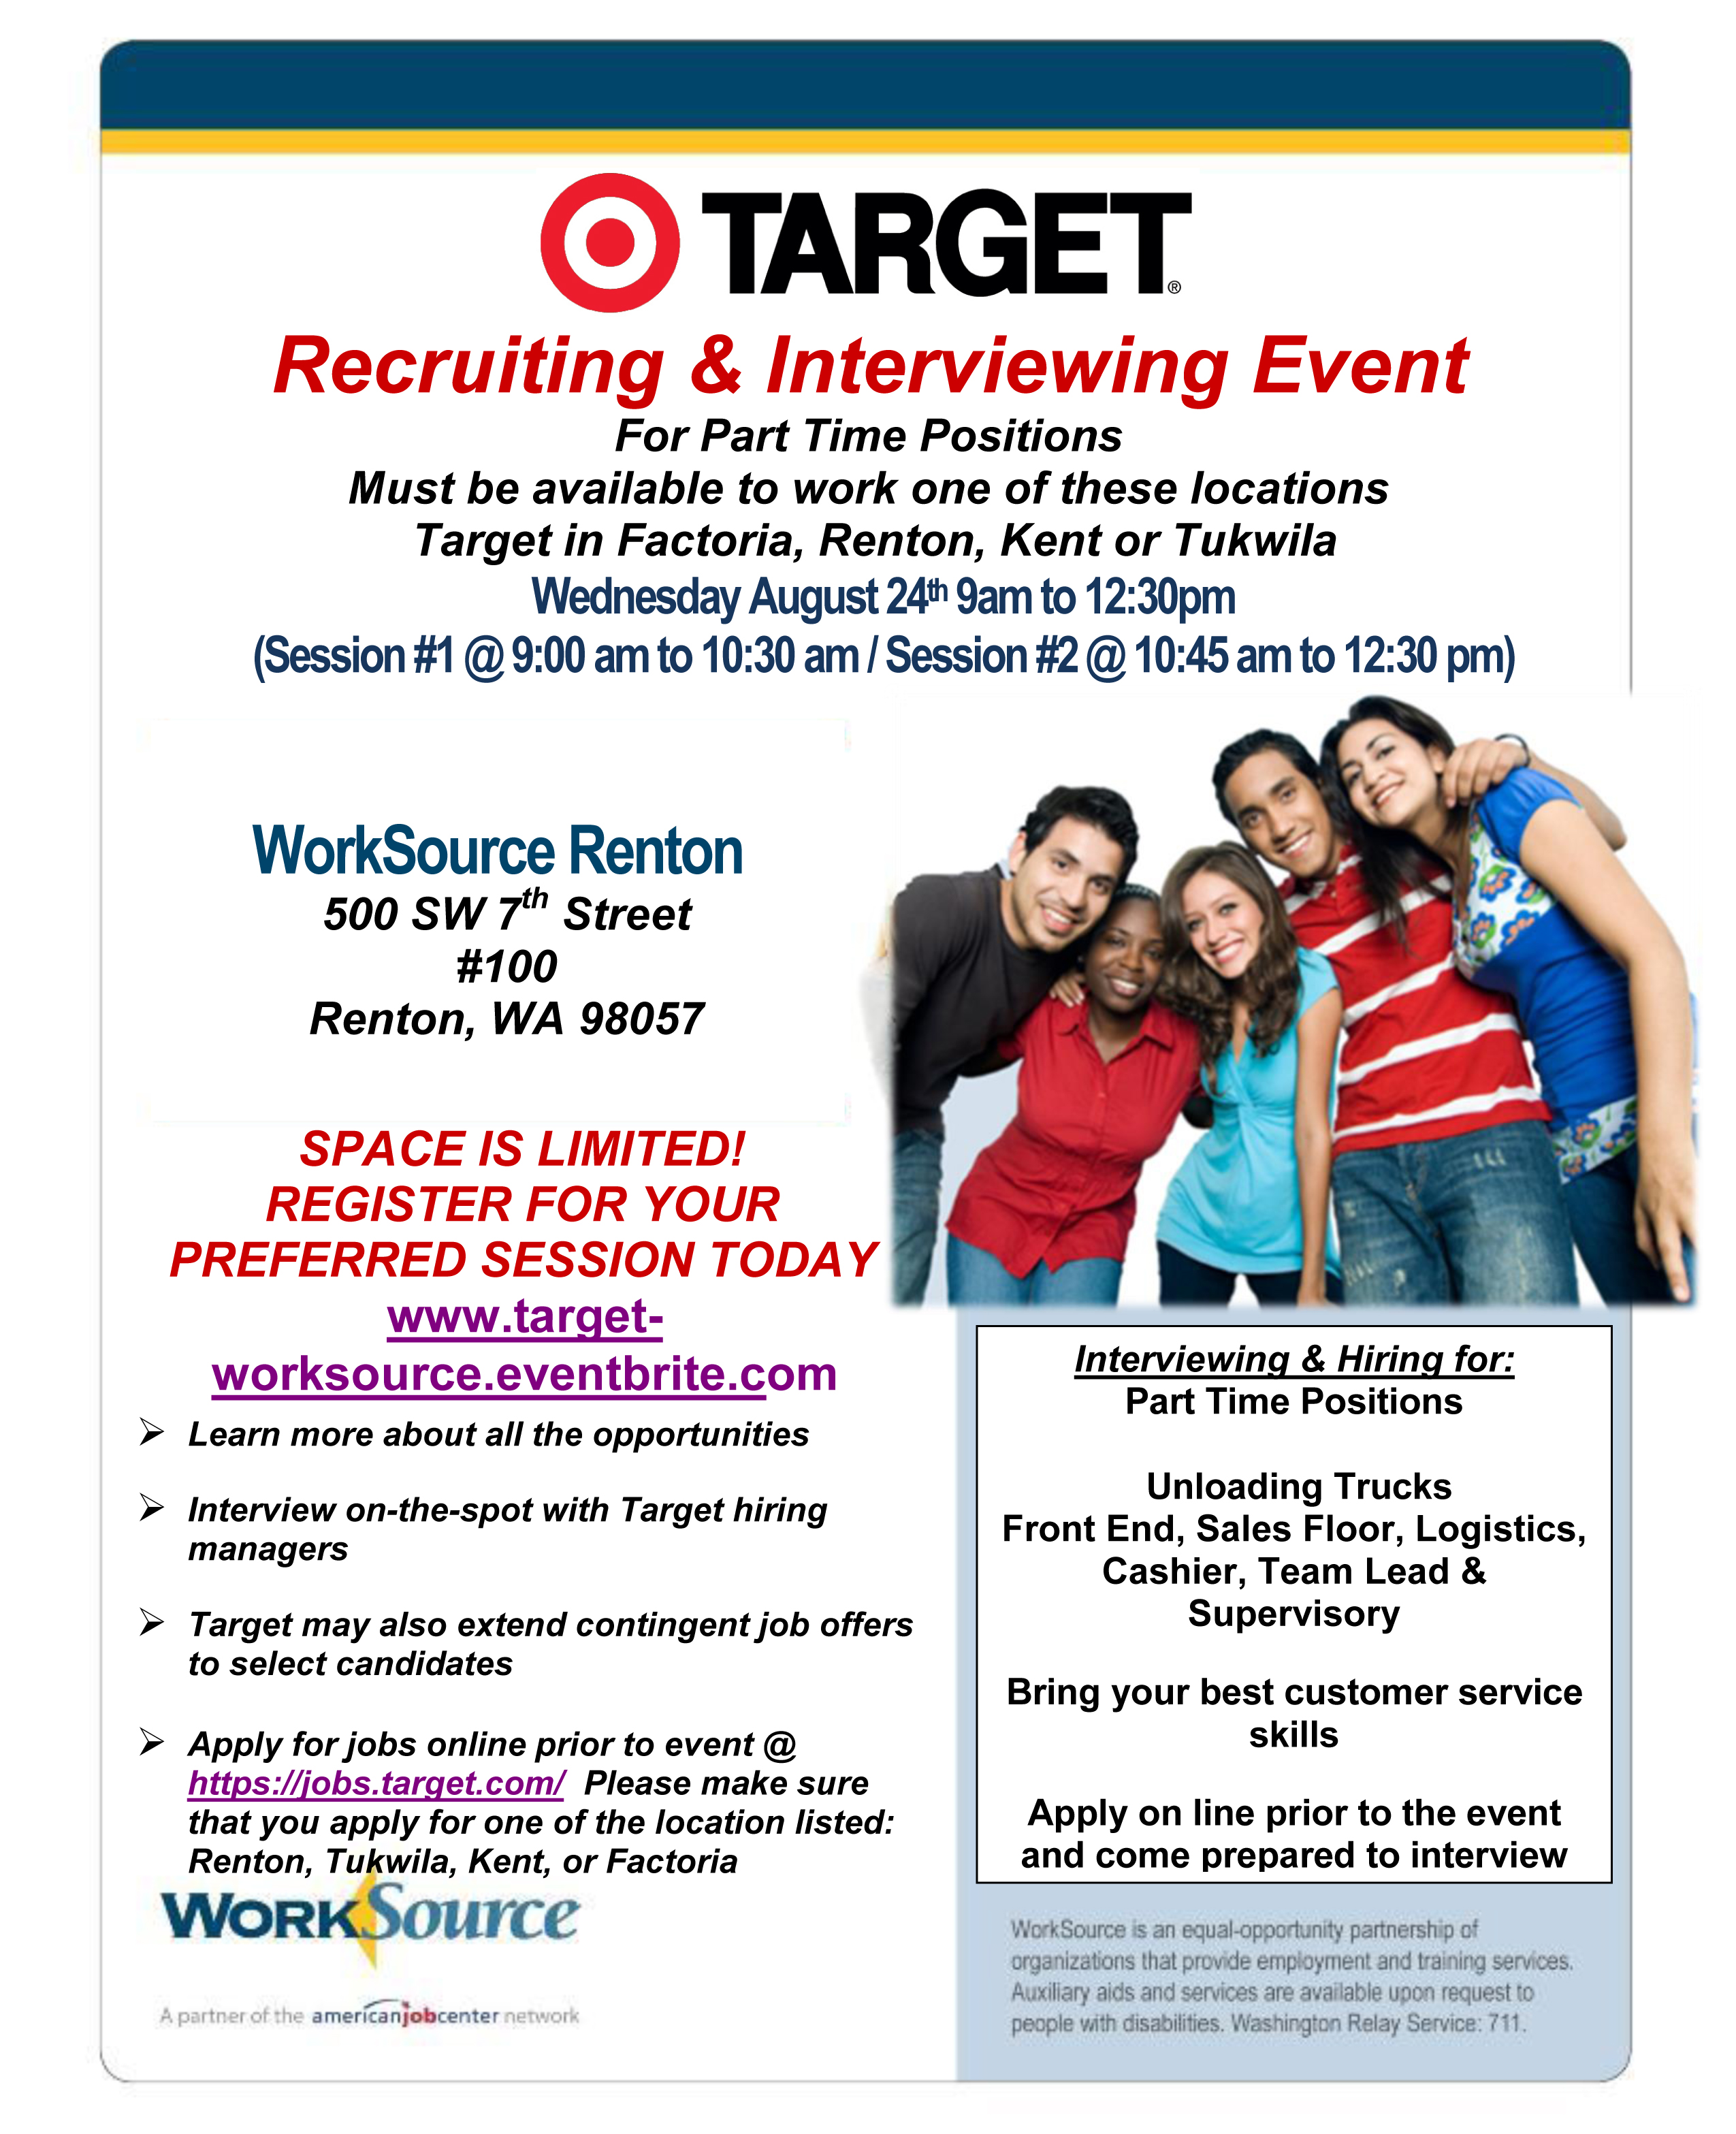 Target Recruiting Interviewing Event